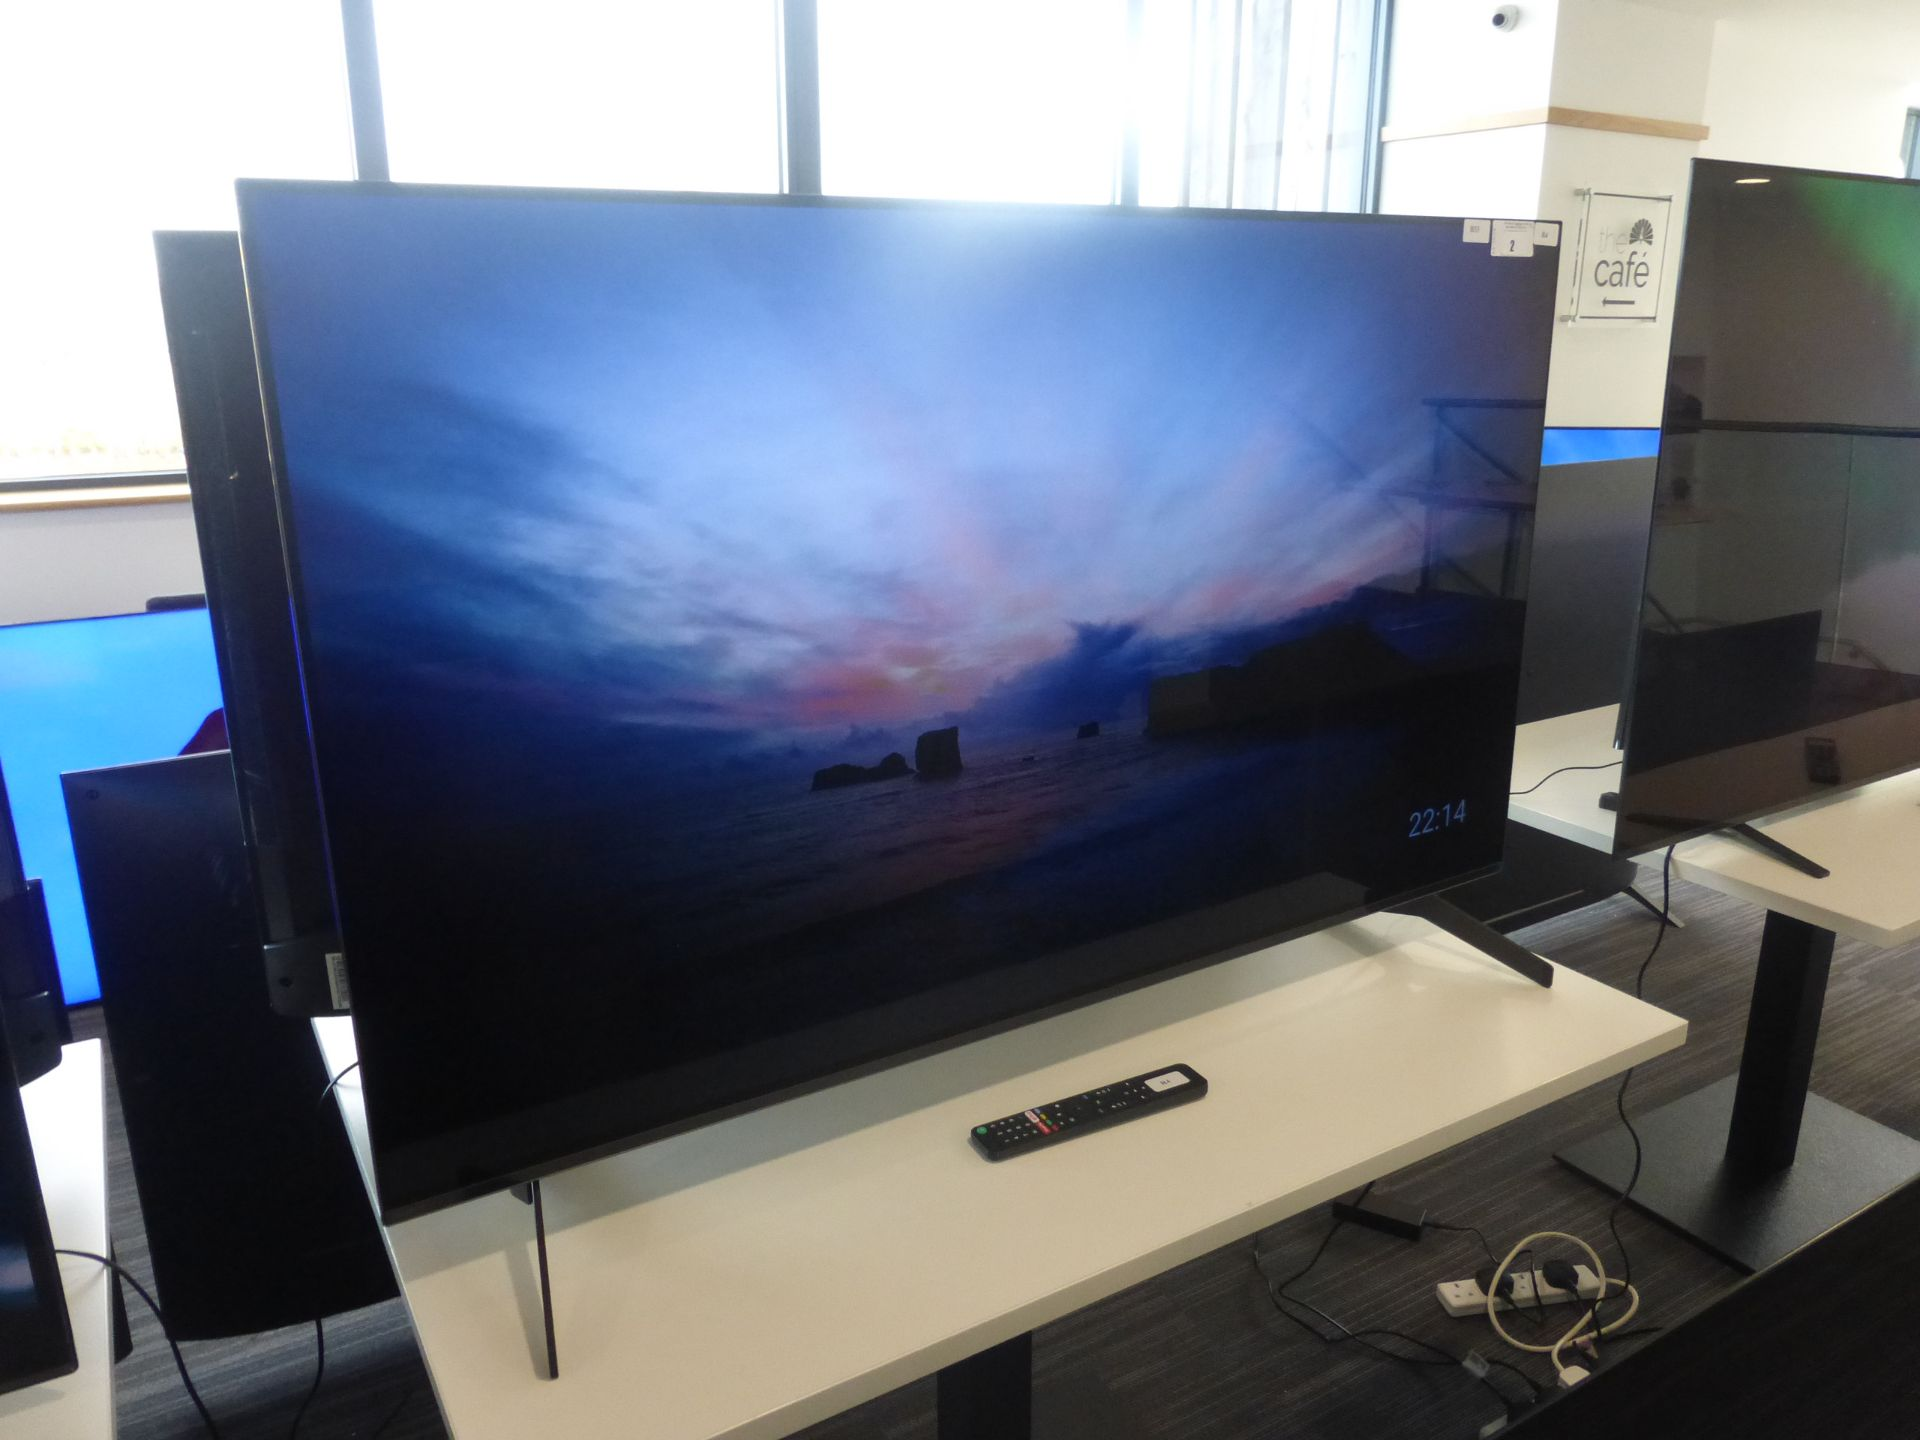 Sony OLED 4K TV Model: KD-55A8, includes remote (R4) and box (B33) Screen has no visible damage,